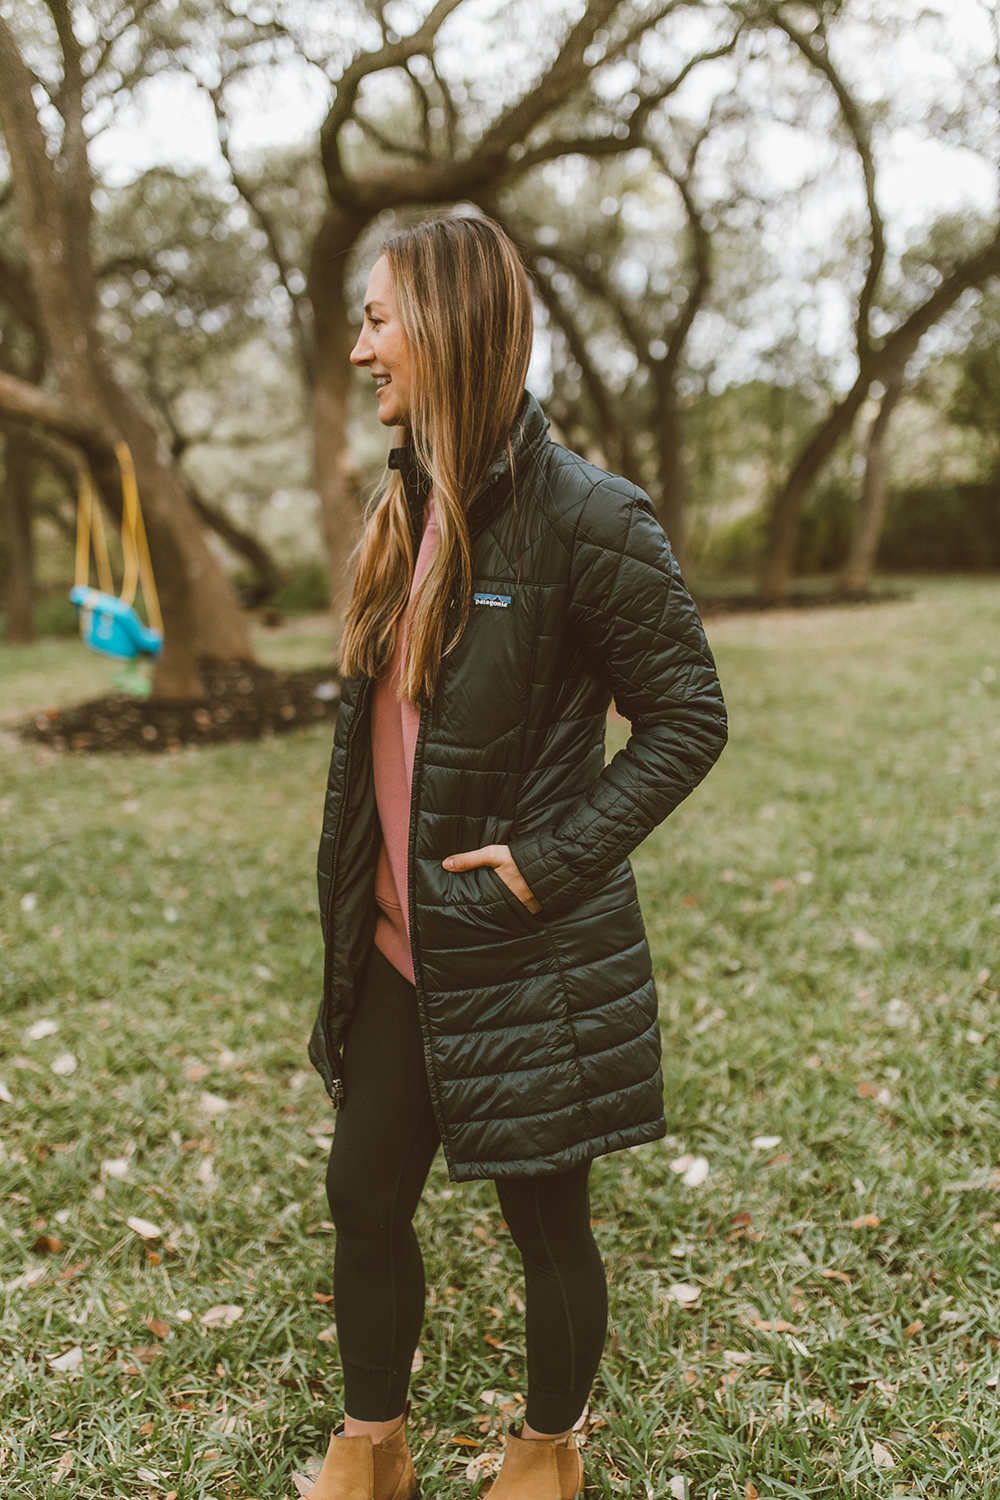 livvyland-blog-olivia-watson-austin-texas-lifestyle-fashion-mom-blog-patagonia-radalie-insulated-parka-jacket